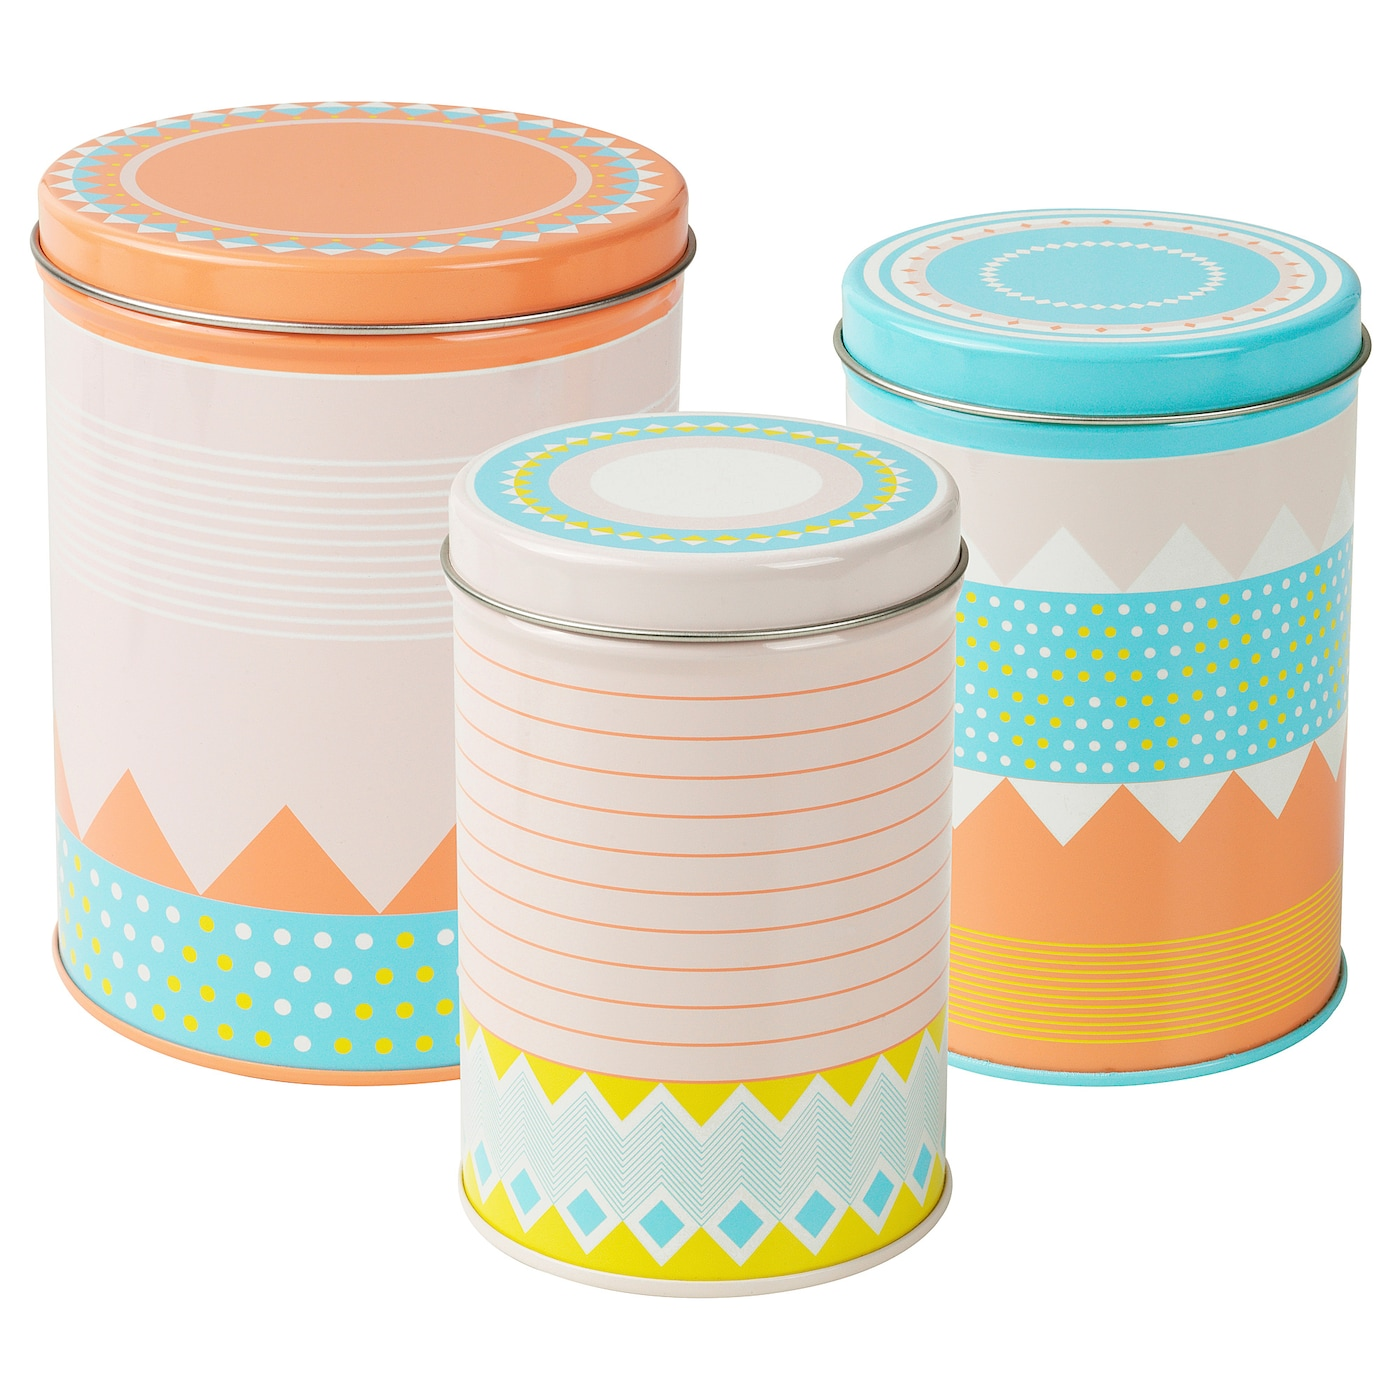 IKEA SOMMAR 2018 tin, set of 3 Suitable for coffee, tea and other dry food.